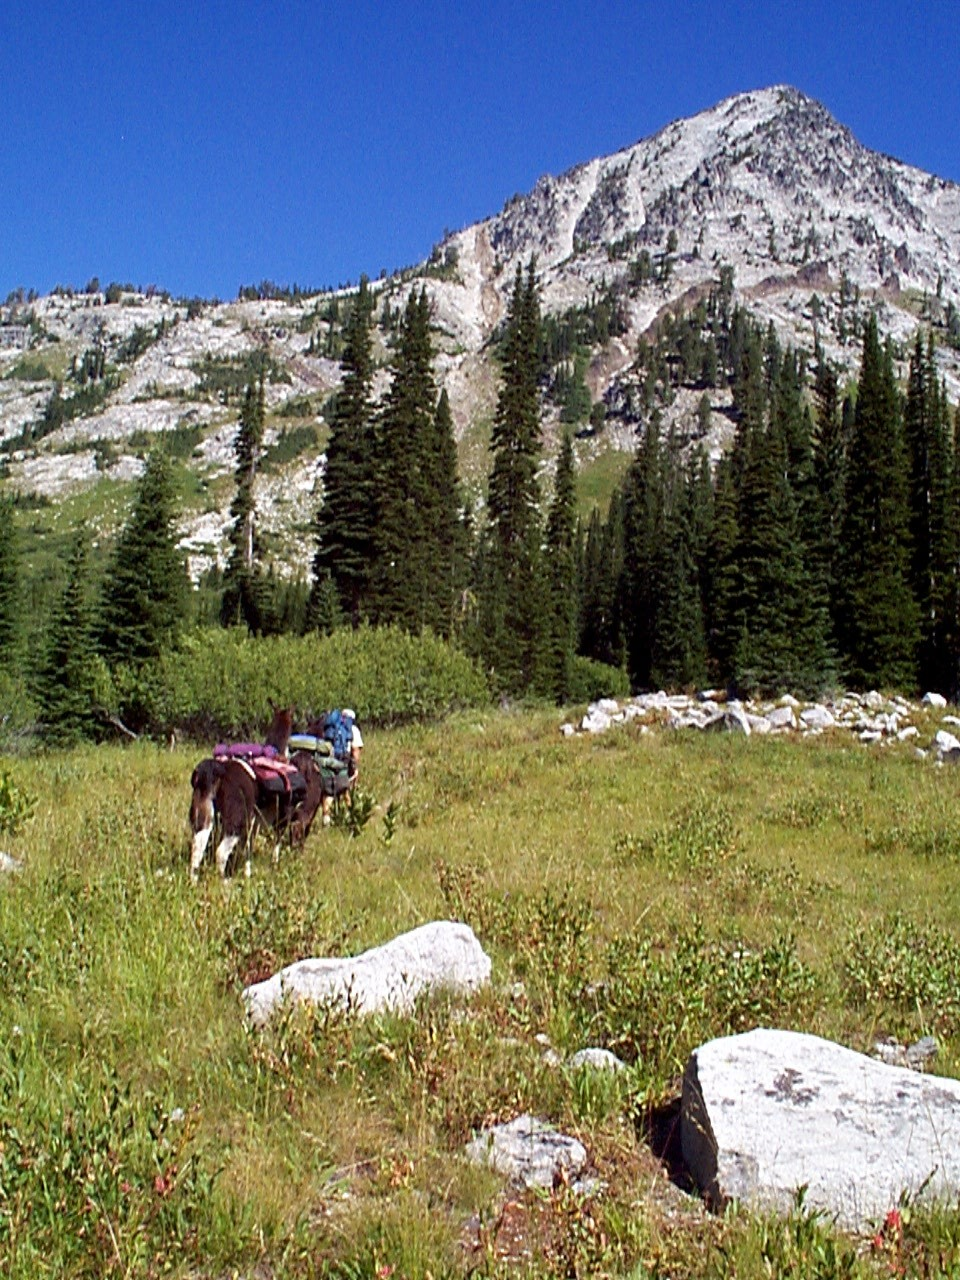 A hiker leading a llama into a subalpine mountain valley in the Eagle Cap Wilderness